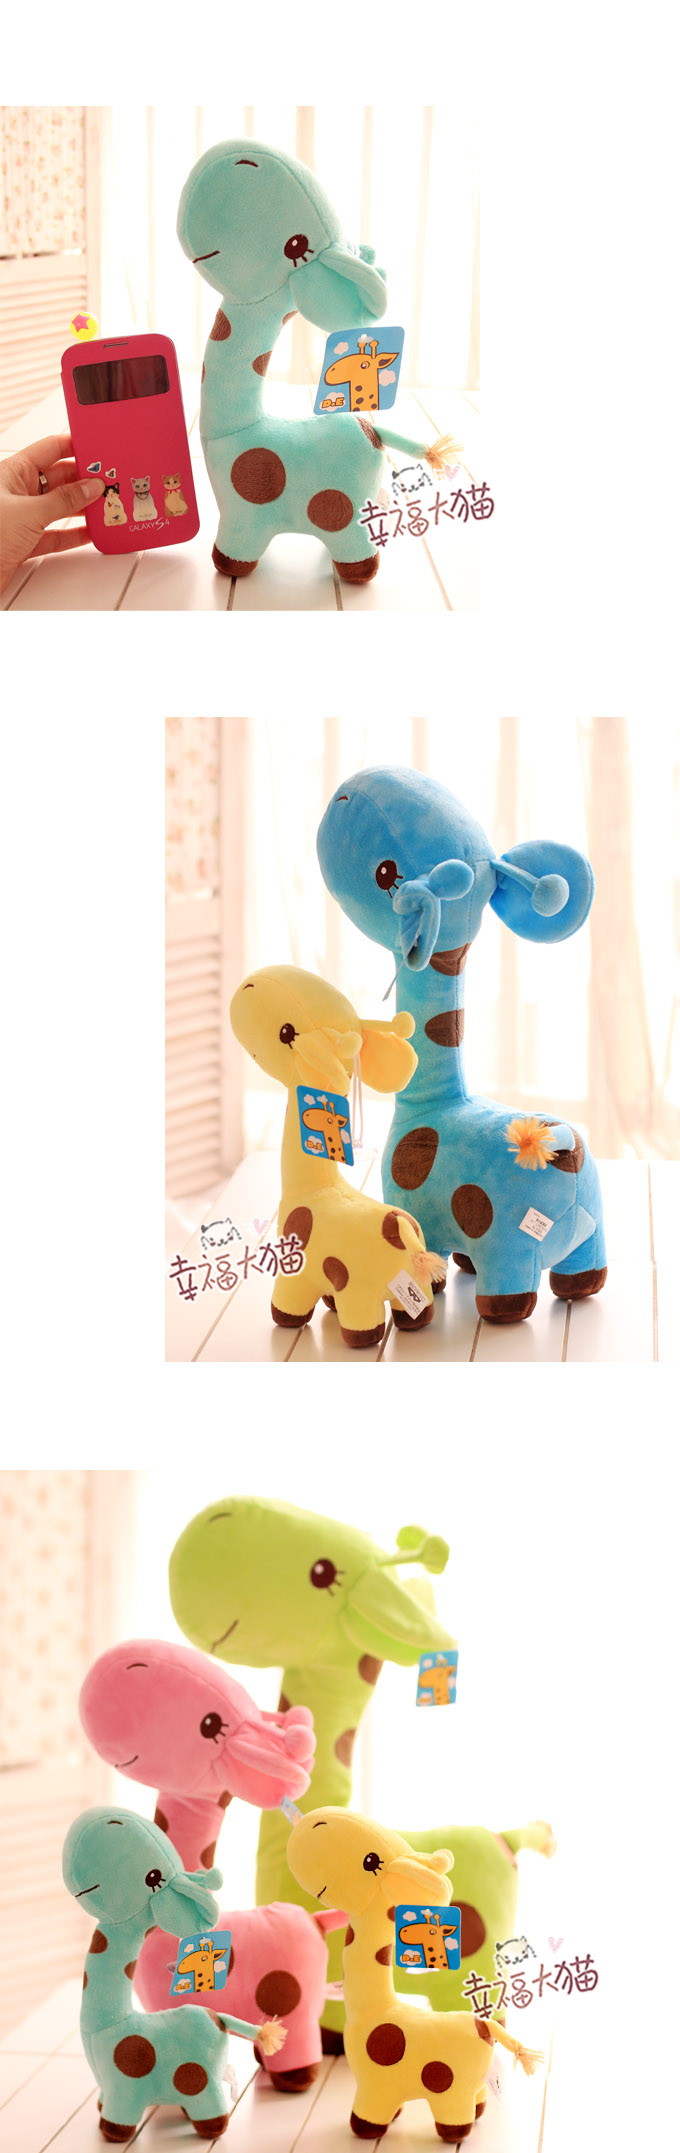 Cutevima Genuine quality Fawn cute cute giraffe plush toy doll figurine deer creative wedding gift